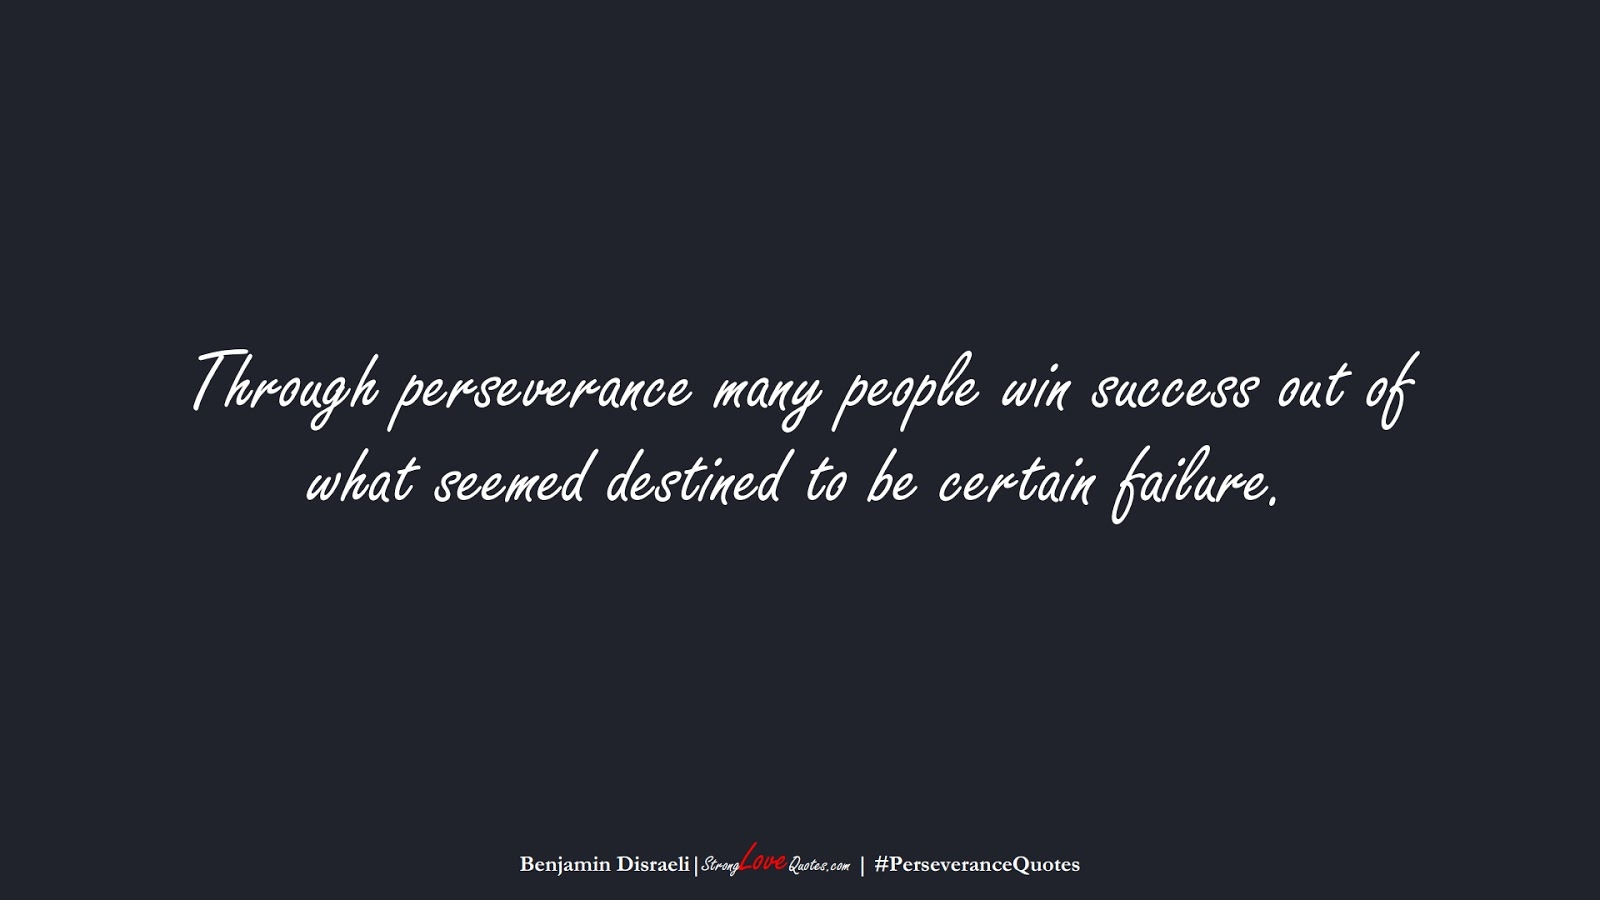 Through perseverance many people win success out of what seemed destined to be certain failure. (Benjamin Disraeli);  #PerseveranceQuotes